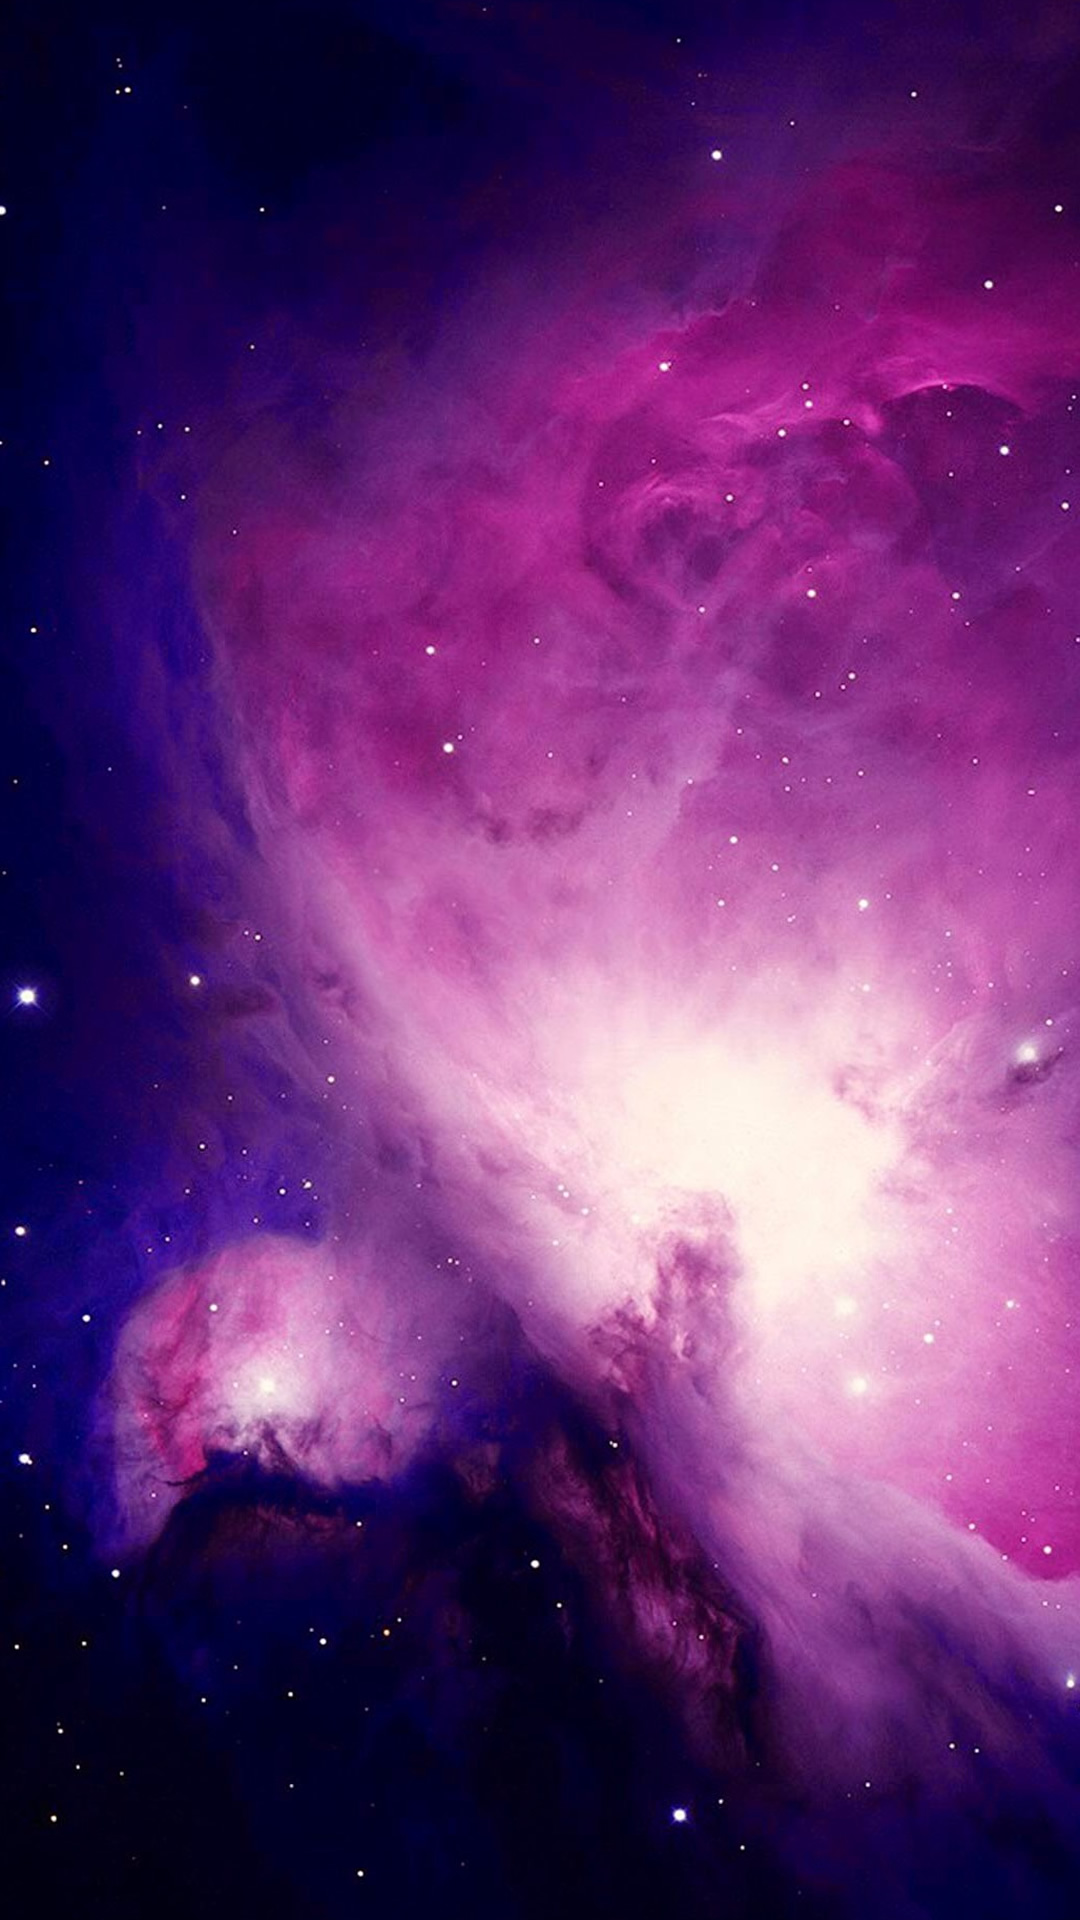 Spectacular-Out-Space-iphone-wallpaper